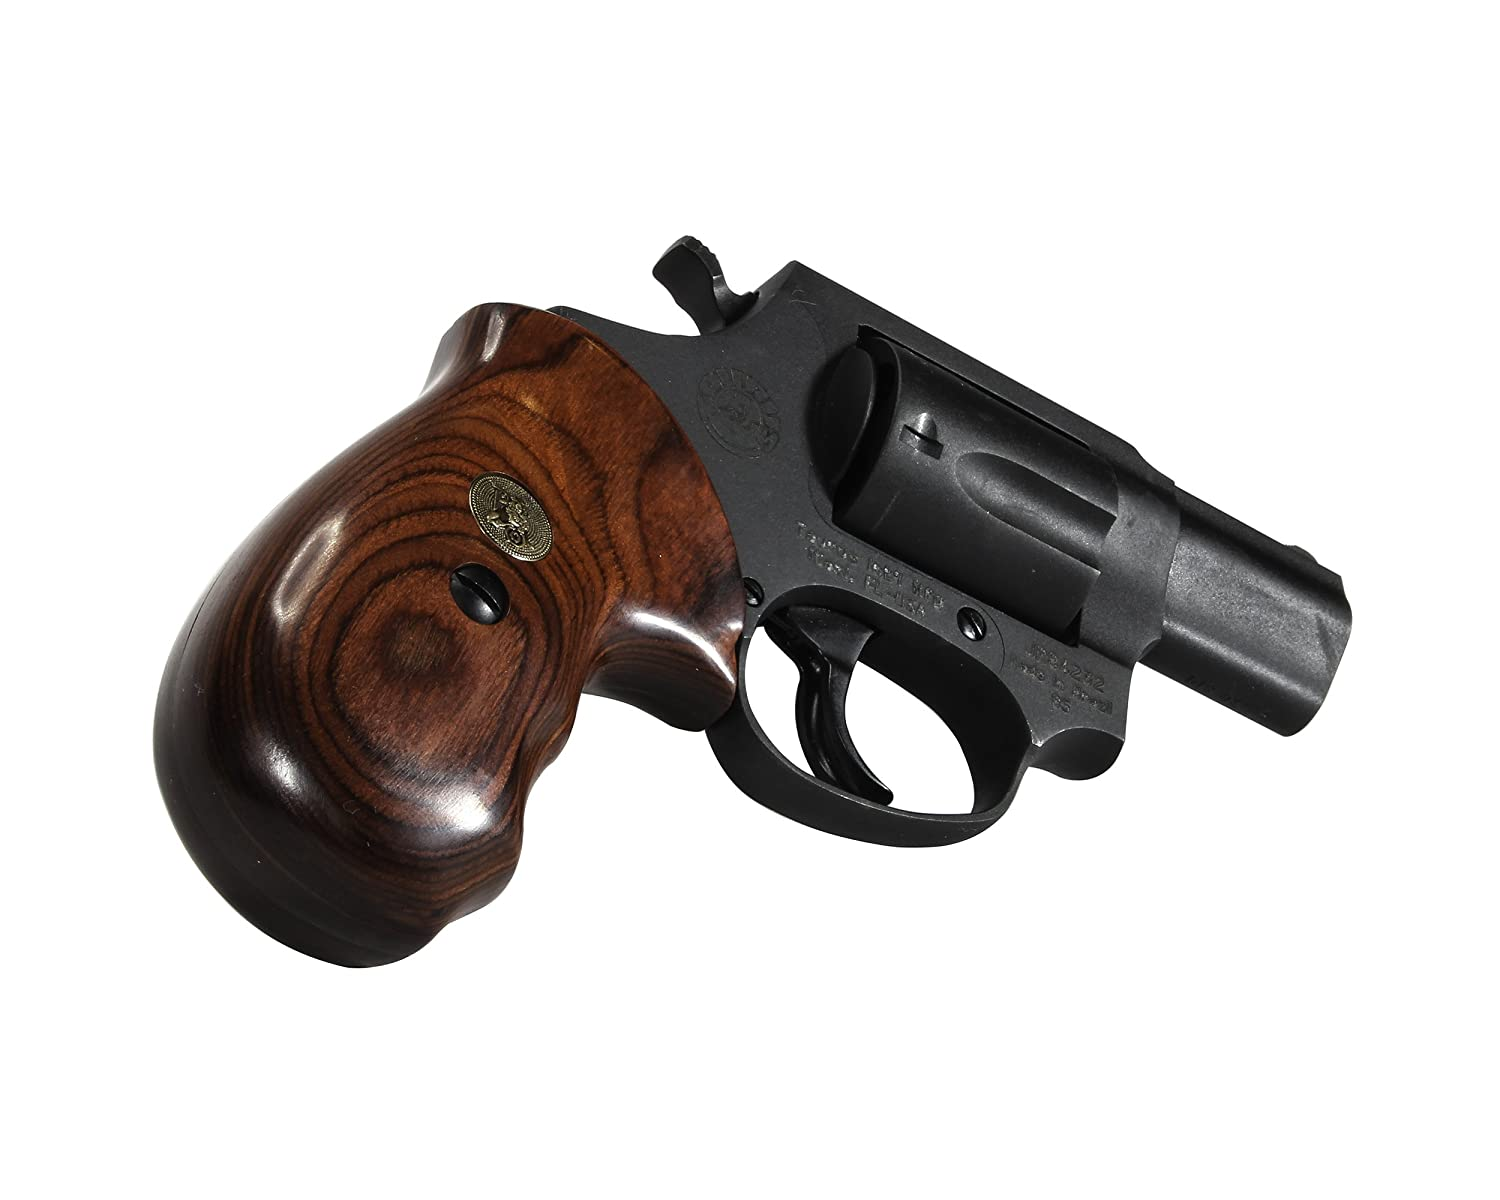 Pachmayr Taurus 85 & Small Frame Wood Revolver Grips